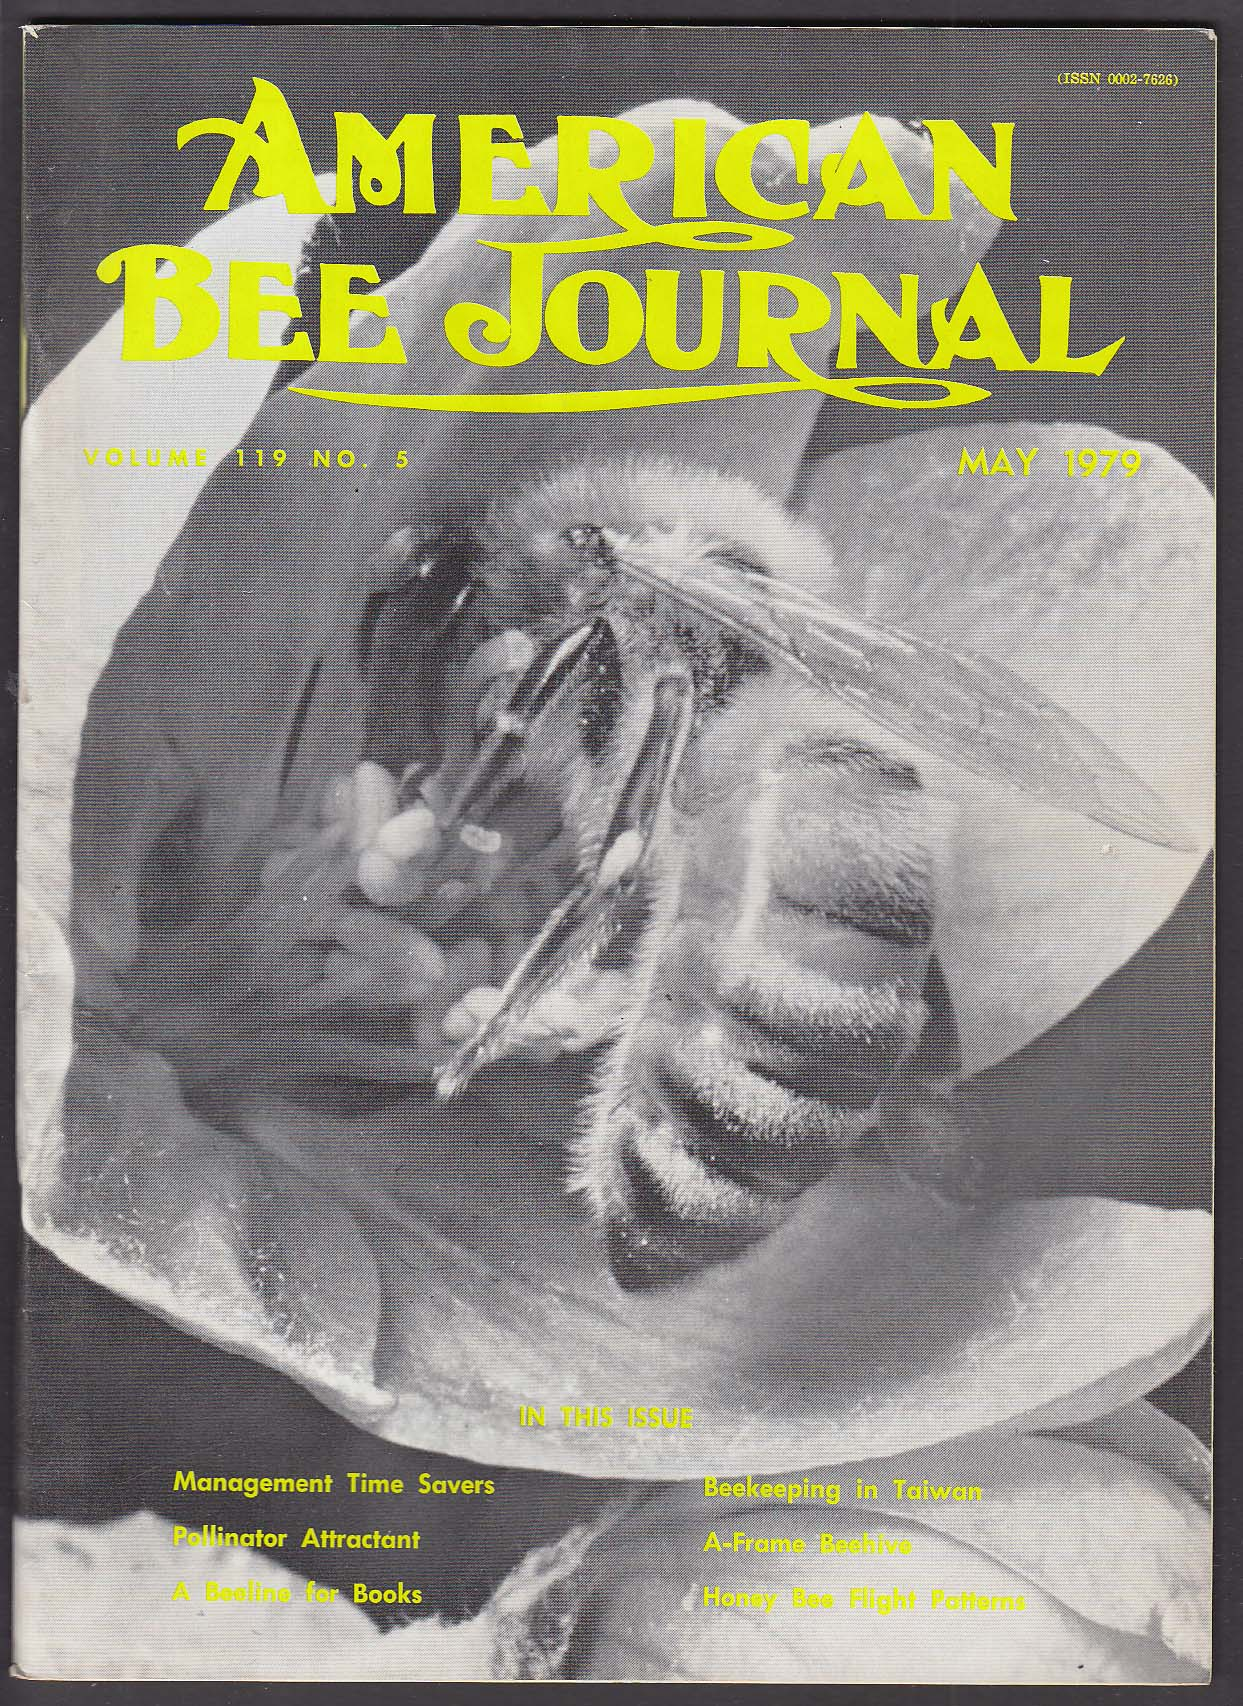 AMERICAN BEE JOURNAL Pollinator Attractant Taiwan A-Frame Beehive Honey + 5 1979